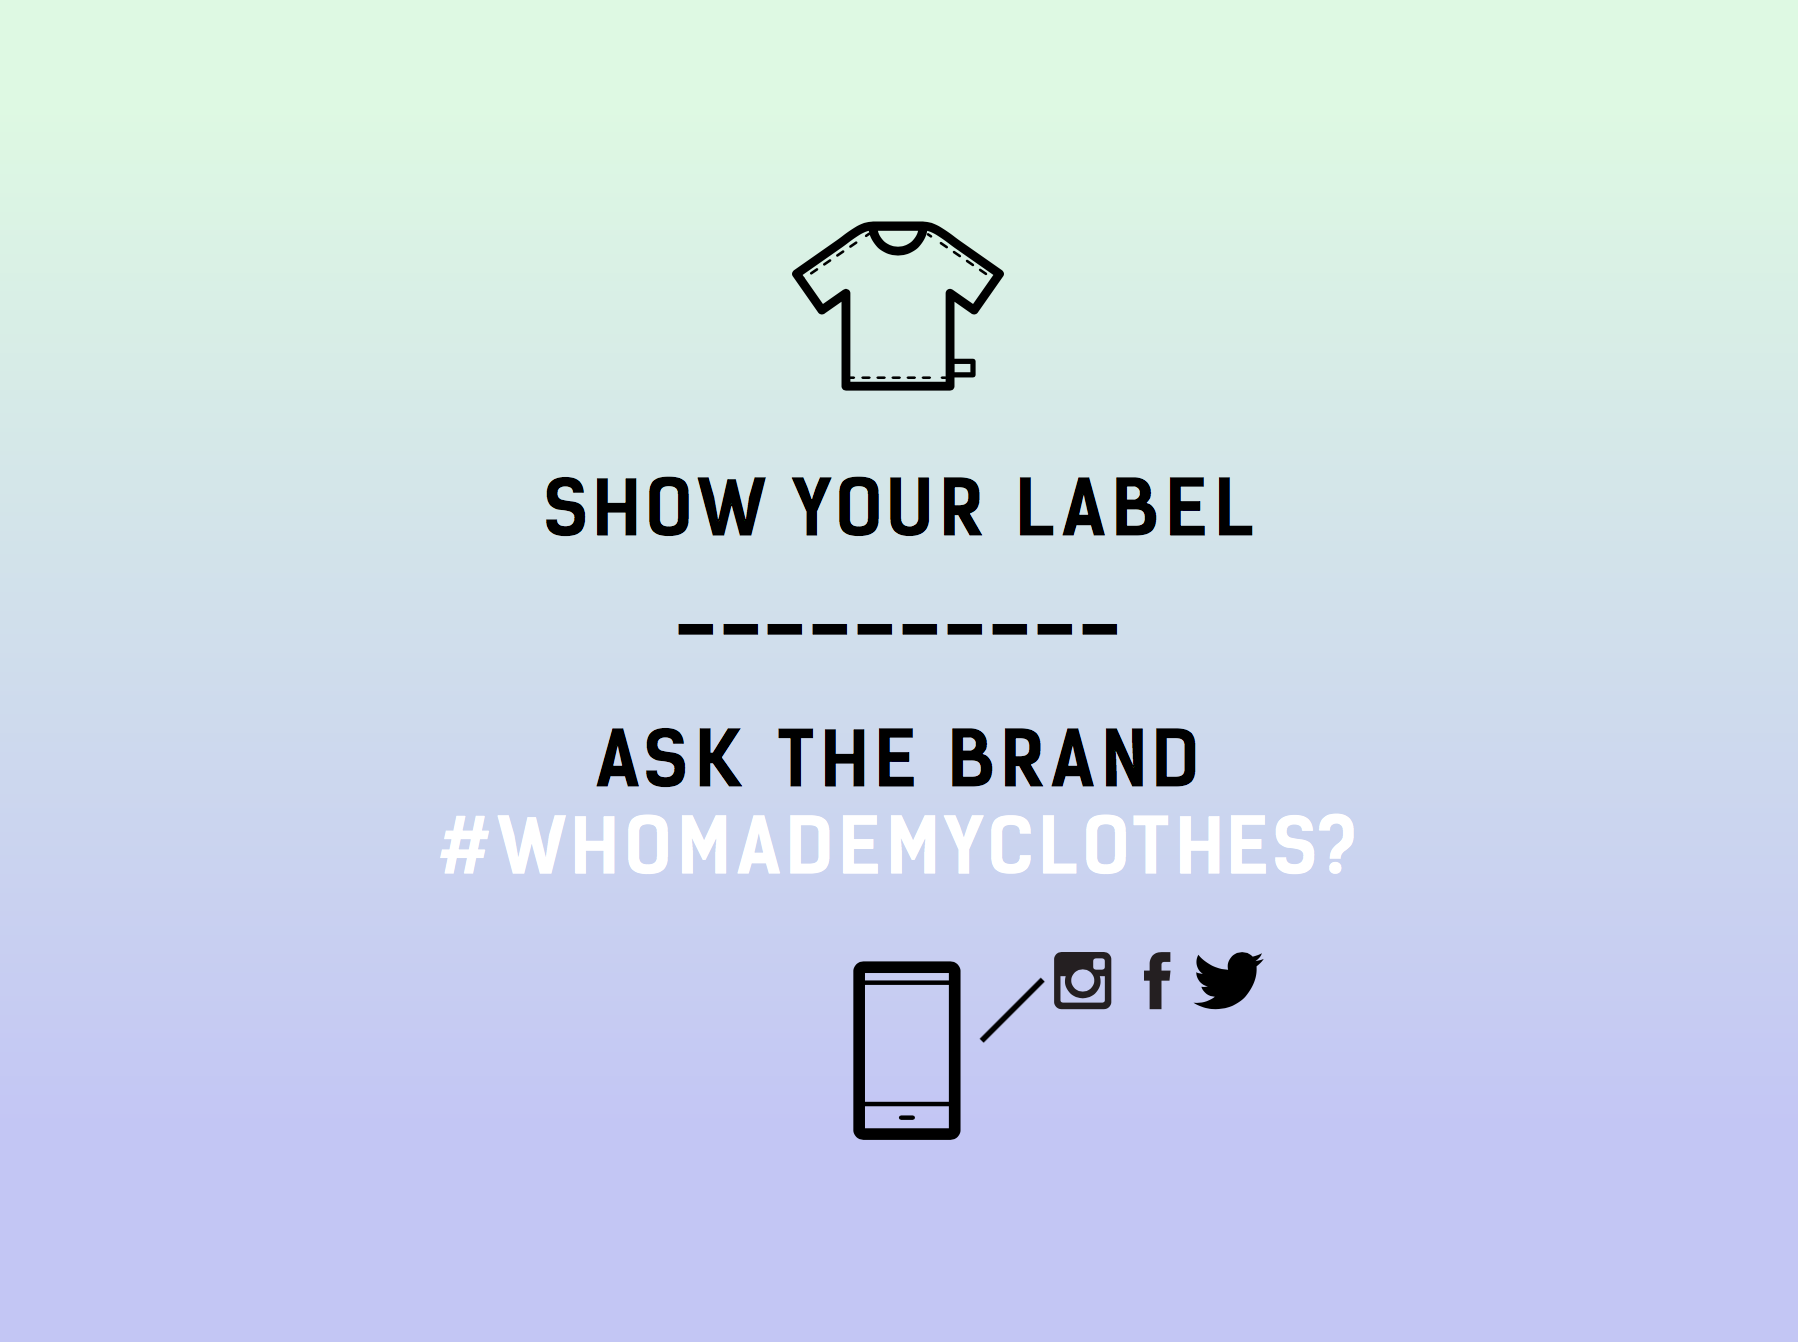 ask-your-brand-who-made-my-clothes-fashion-revolution